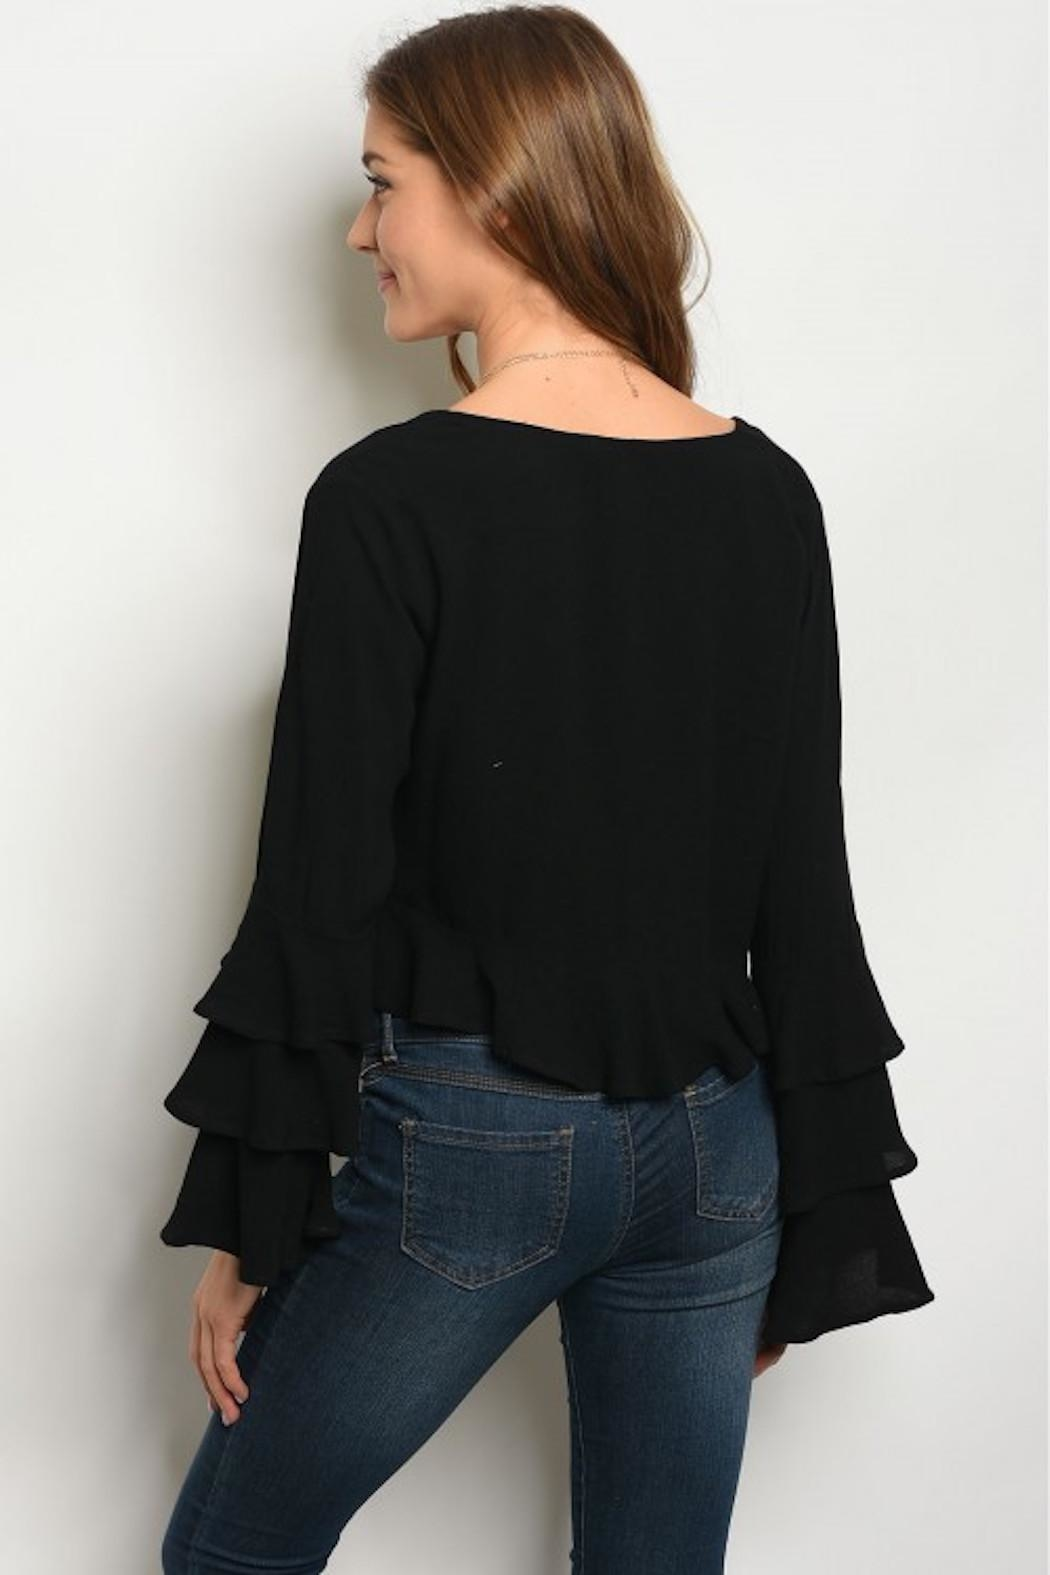 Very J Ruffle Tie-Front Cardigan - Front Full Image